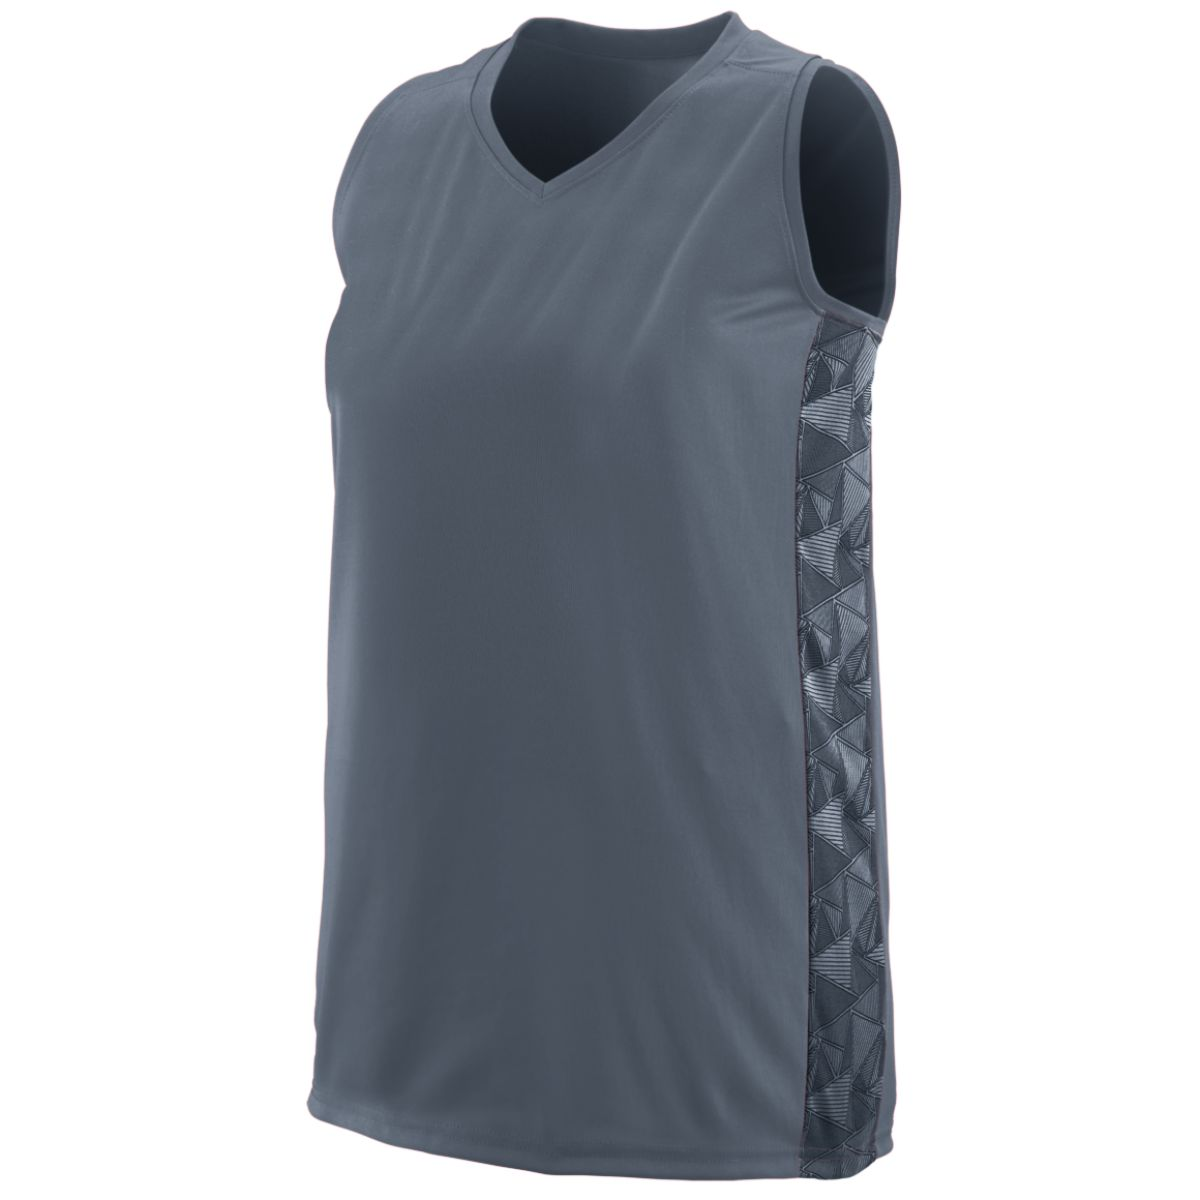 Girls Fast Break Racerback Jersey